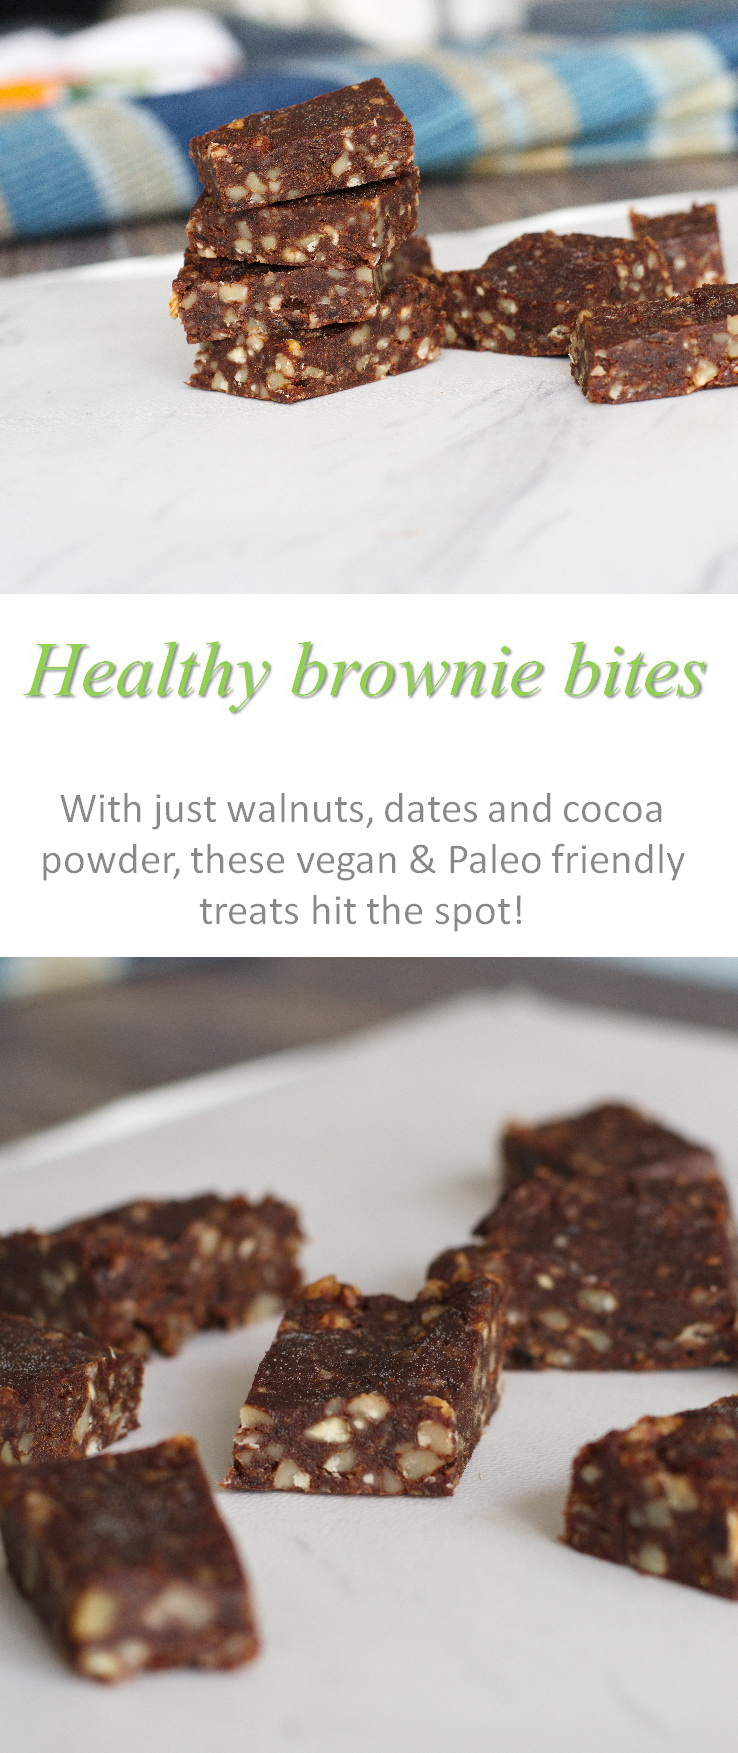 Healthy brownie bites using only 4 ingredients - all natural, no added refined sugar ... and YUMMY! #brownie